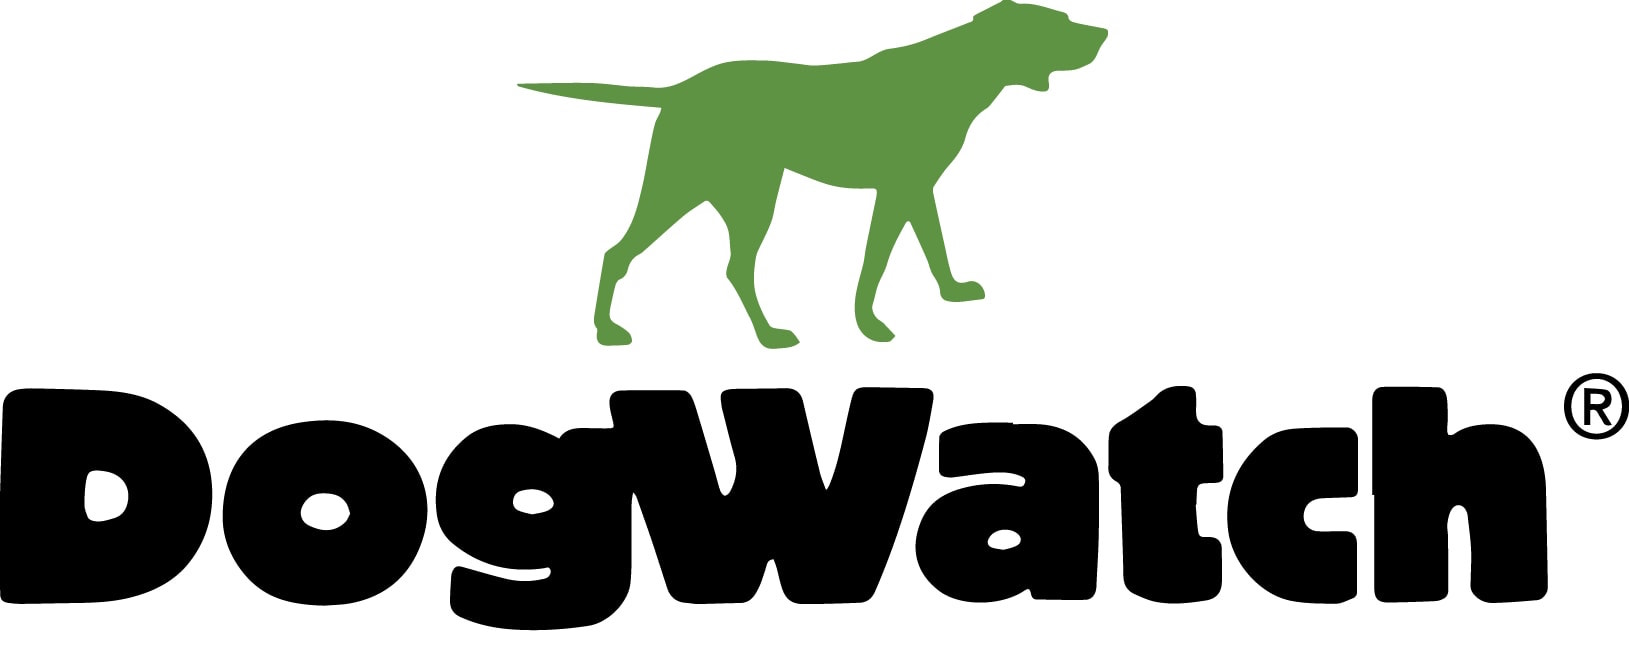 Find the best electric dog fences consumeraffairs dogwatch manufactures and sells in ground fences and additional electric barriers it has been in business since 1990 the companys headquarters and solutioingenieria Choice Image